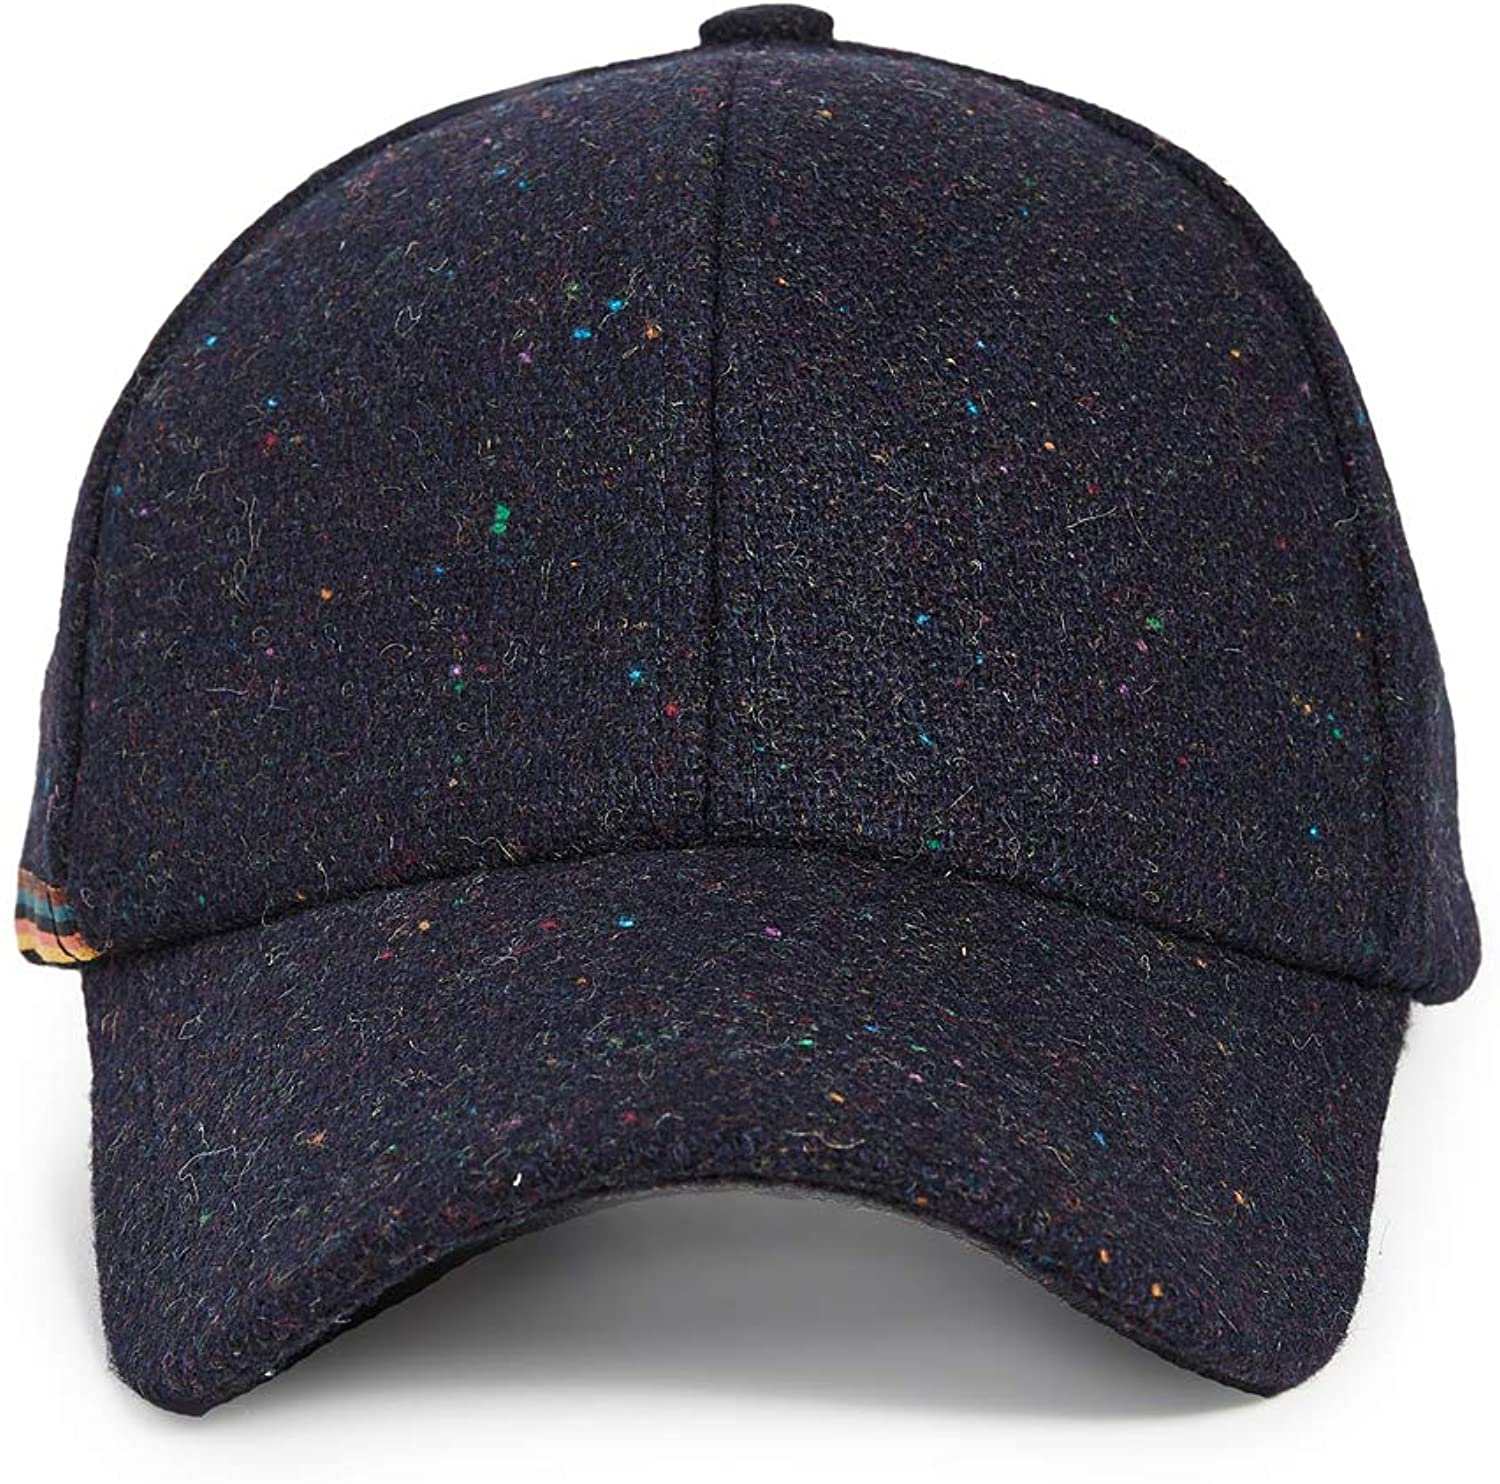 Paul Smith Men's Flecked Wool Cap